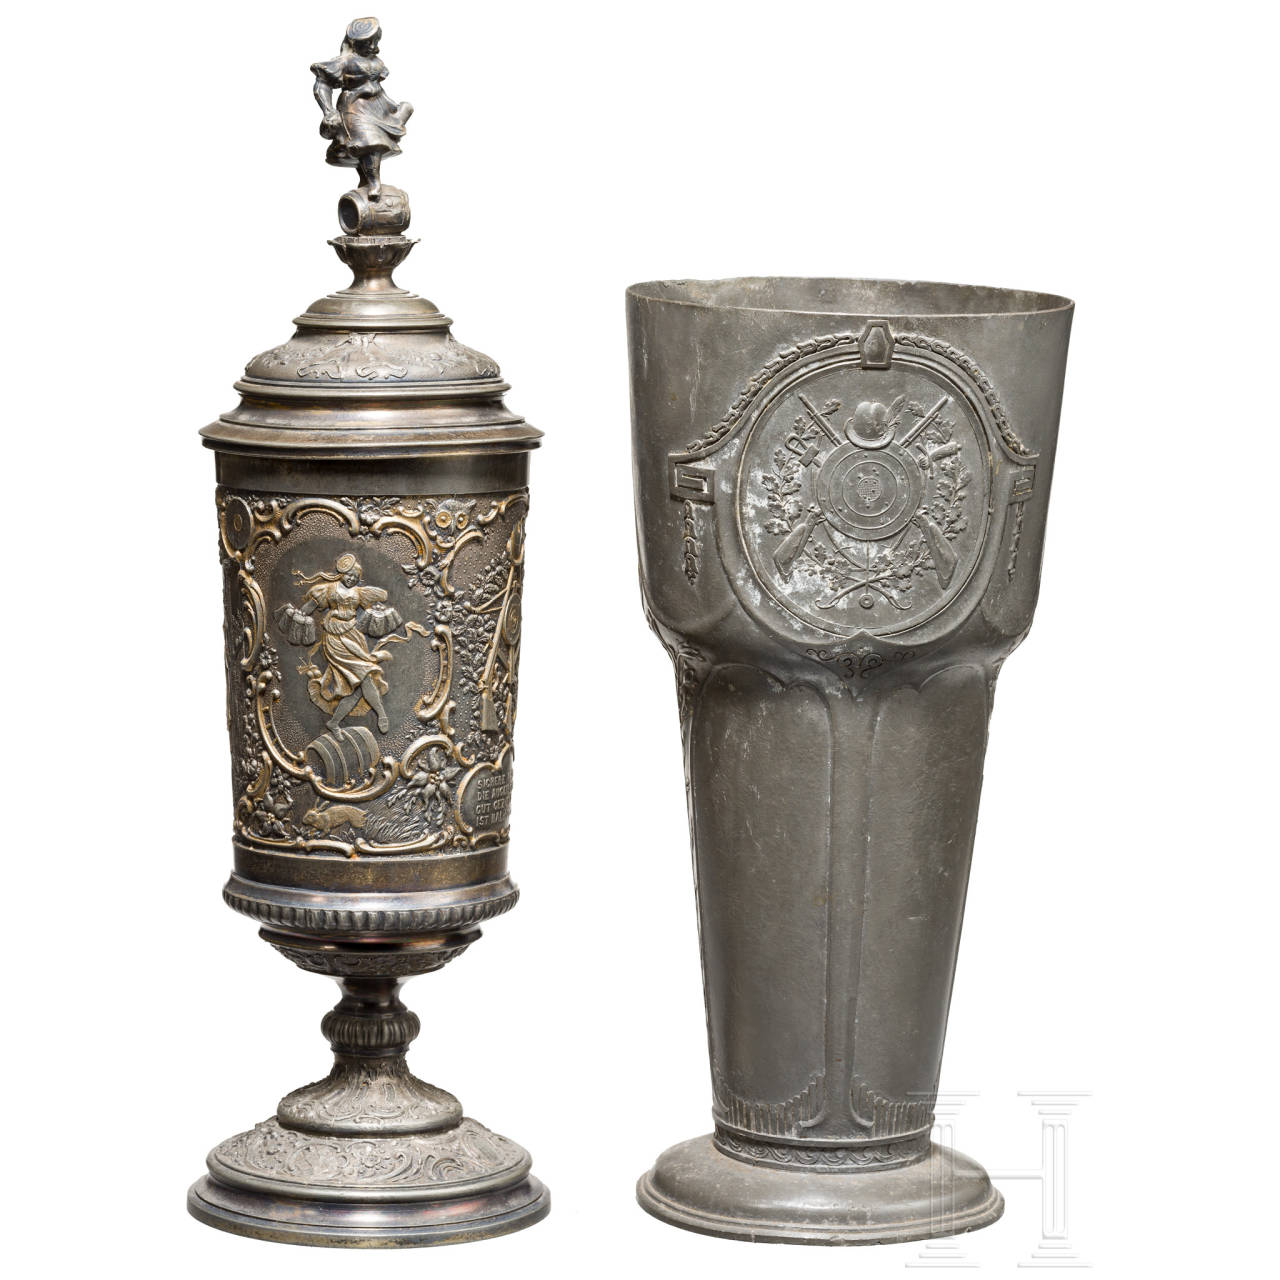 Two shooting trophies made of pewter